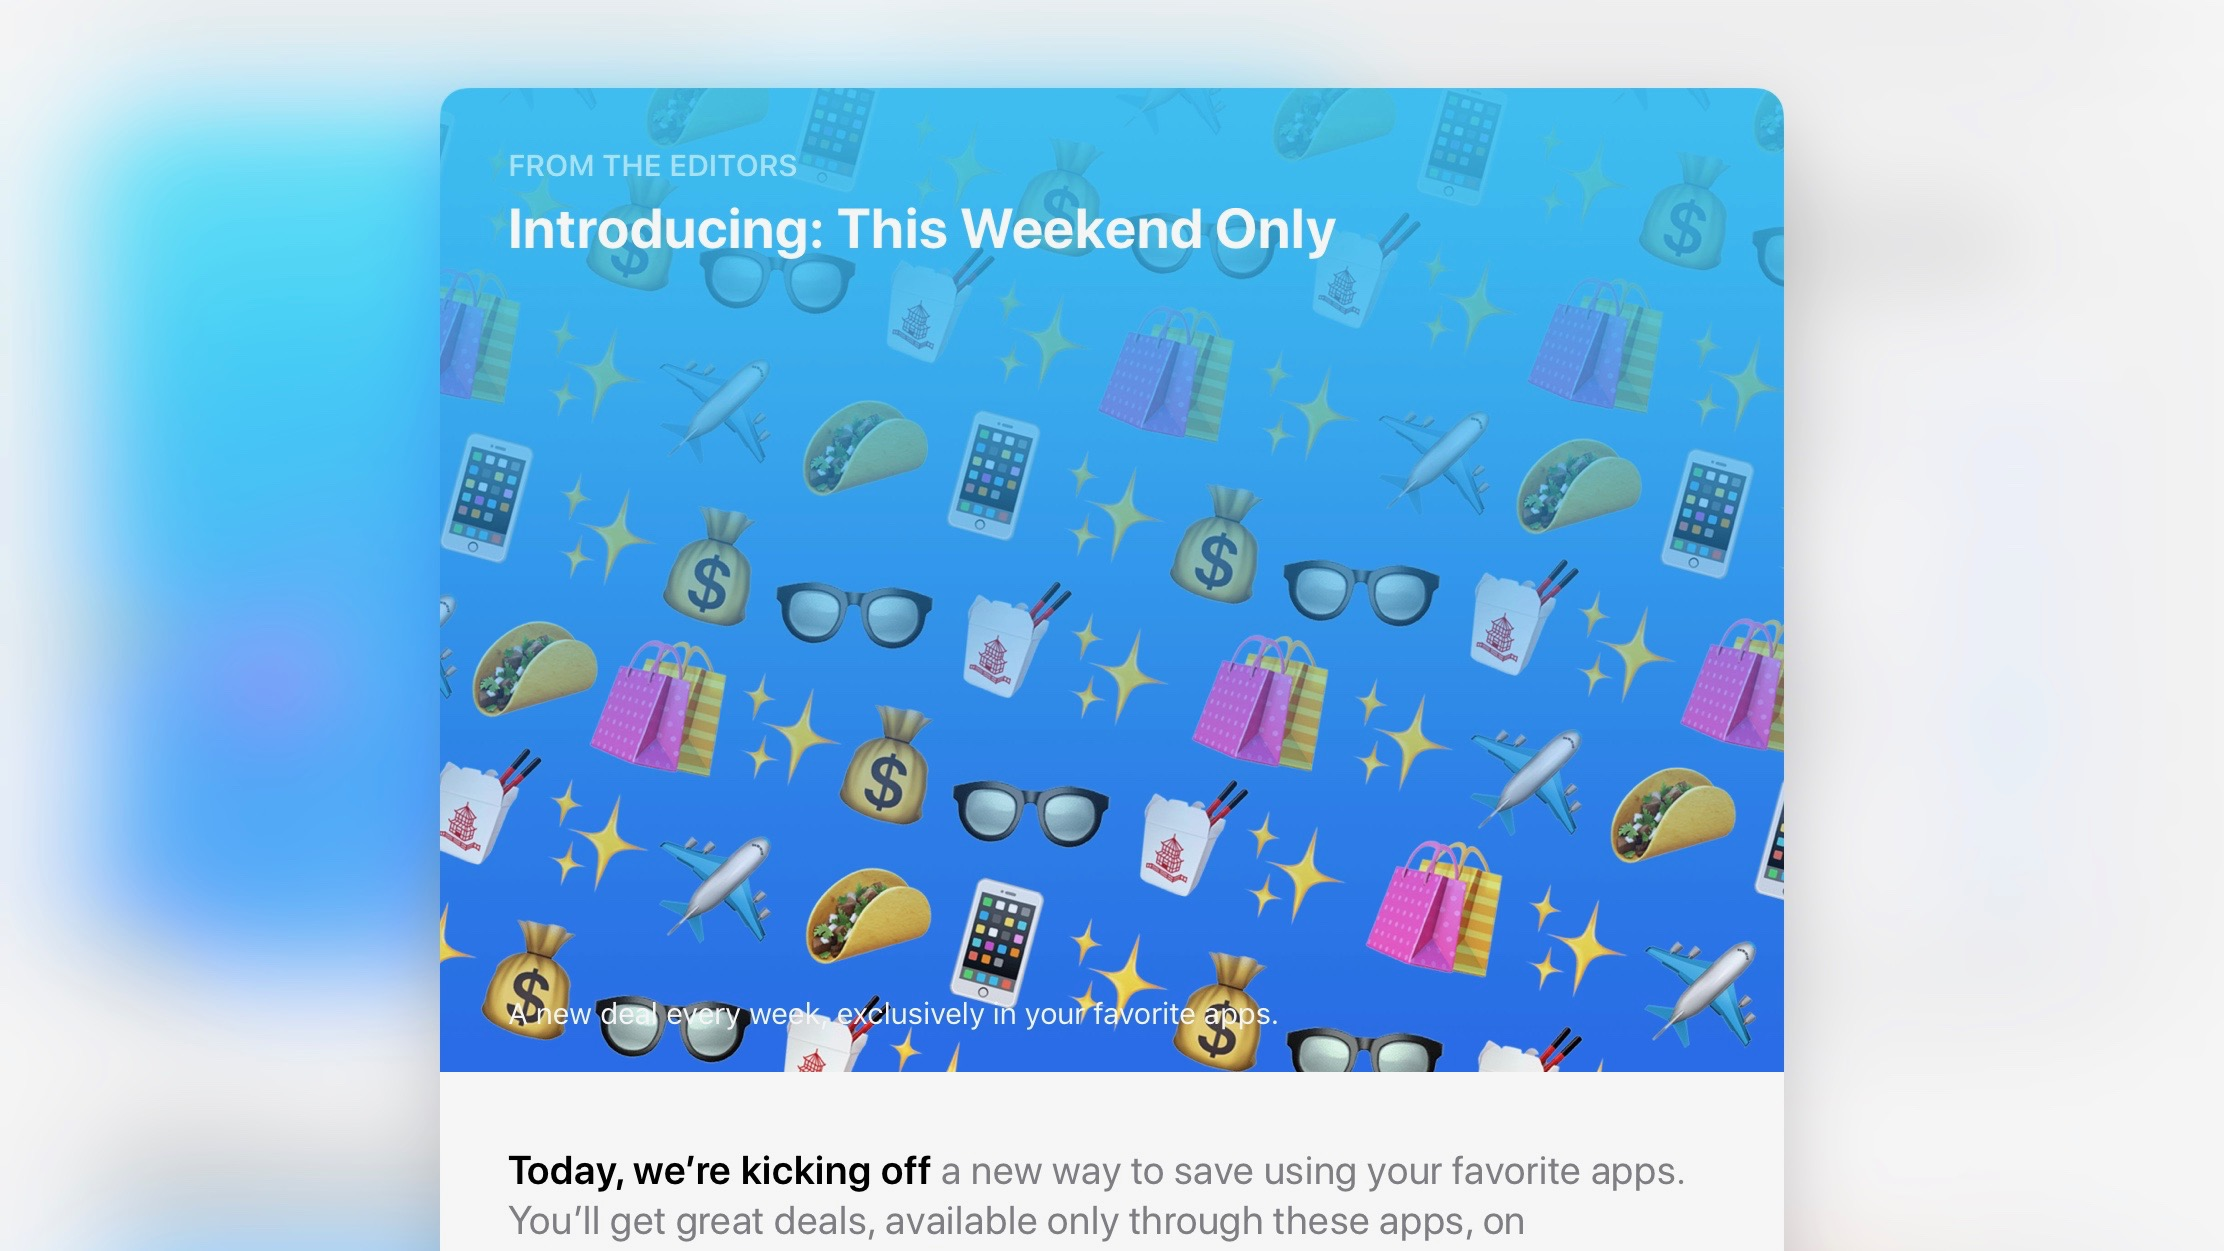 Apple's new 'This Weekend Only' promo offers in-app deals from HotelTonight, Chipotle, more